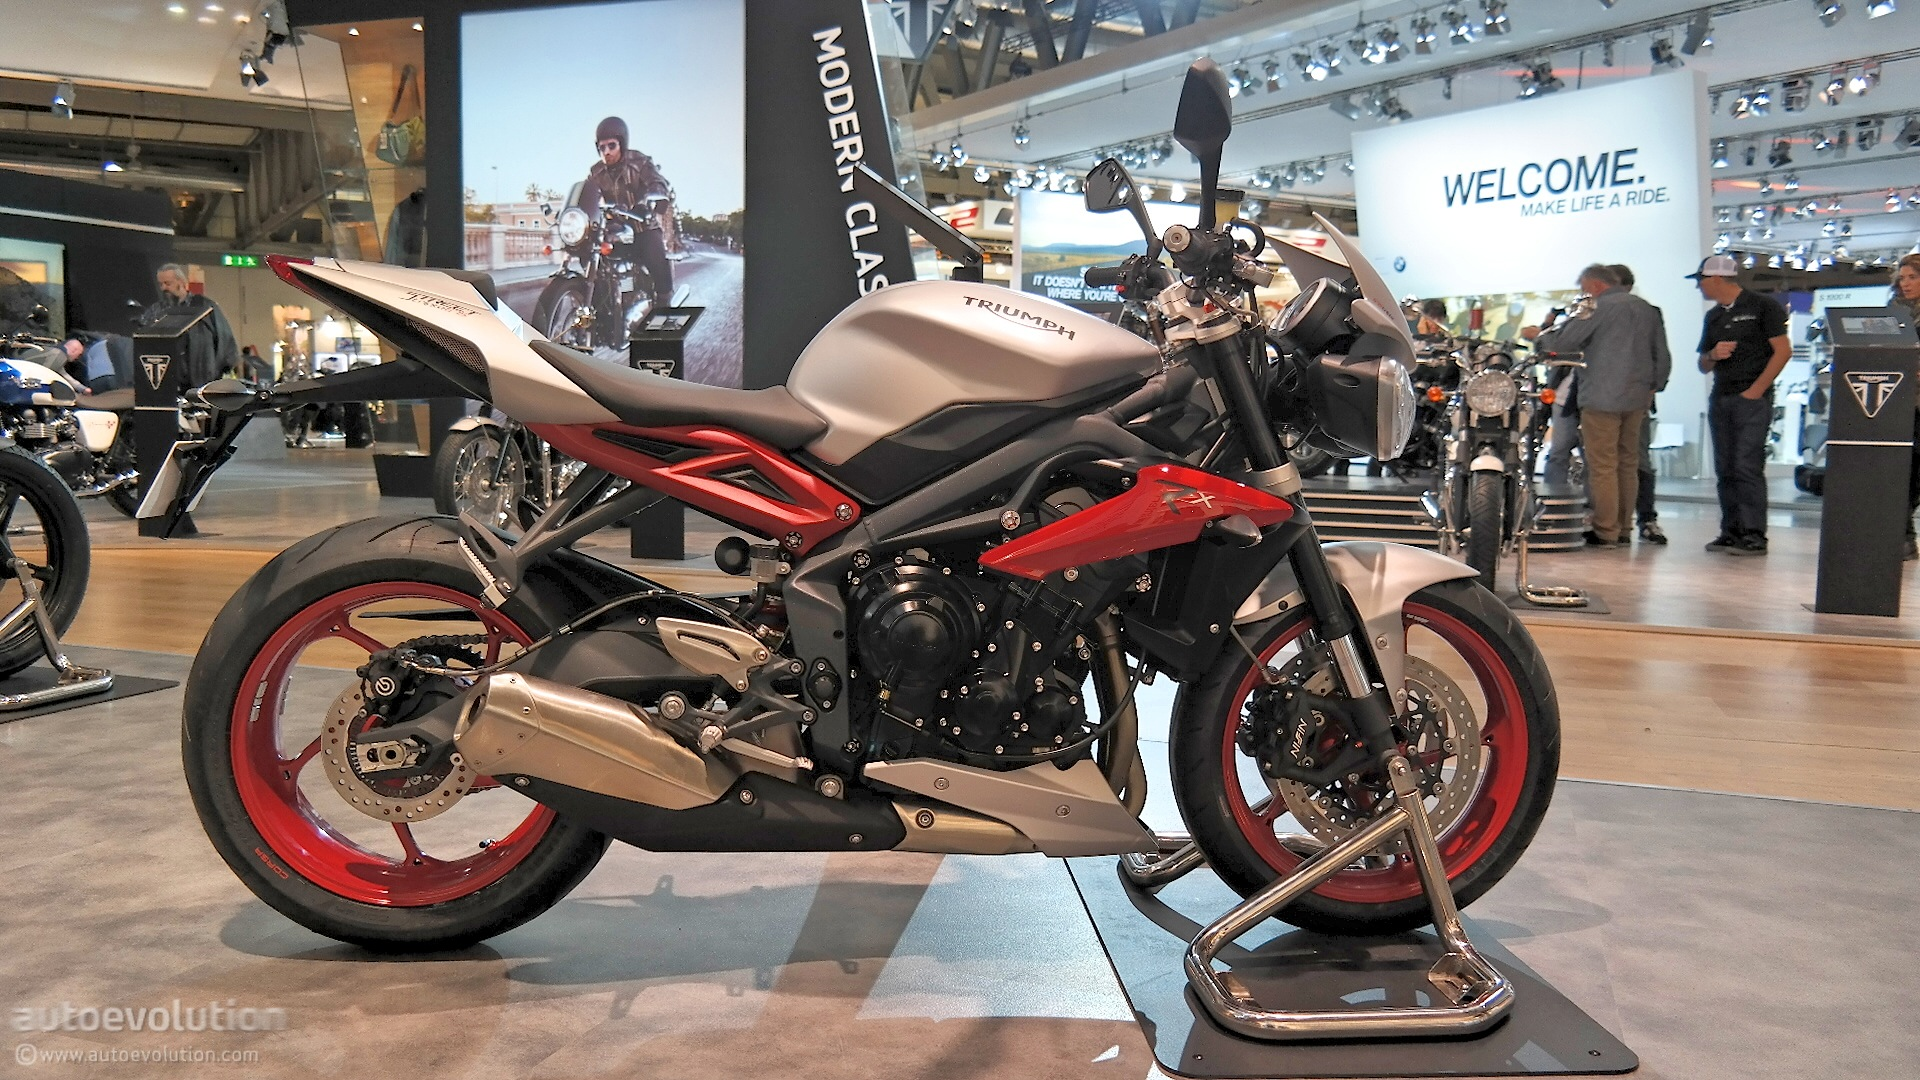 2015 triumph street triple 675rx mixes old and new at eicma 2014 live photos autoevolution. Black Bedroom Furniture Sets. Home Design Ideas